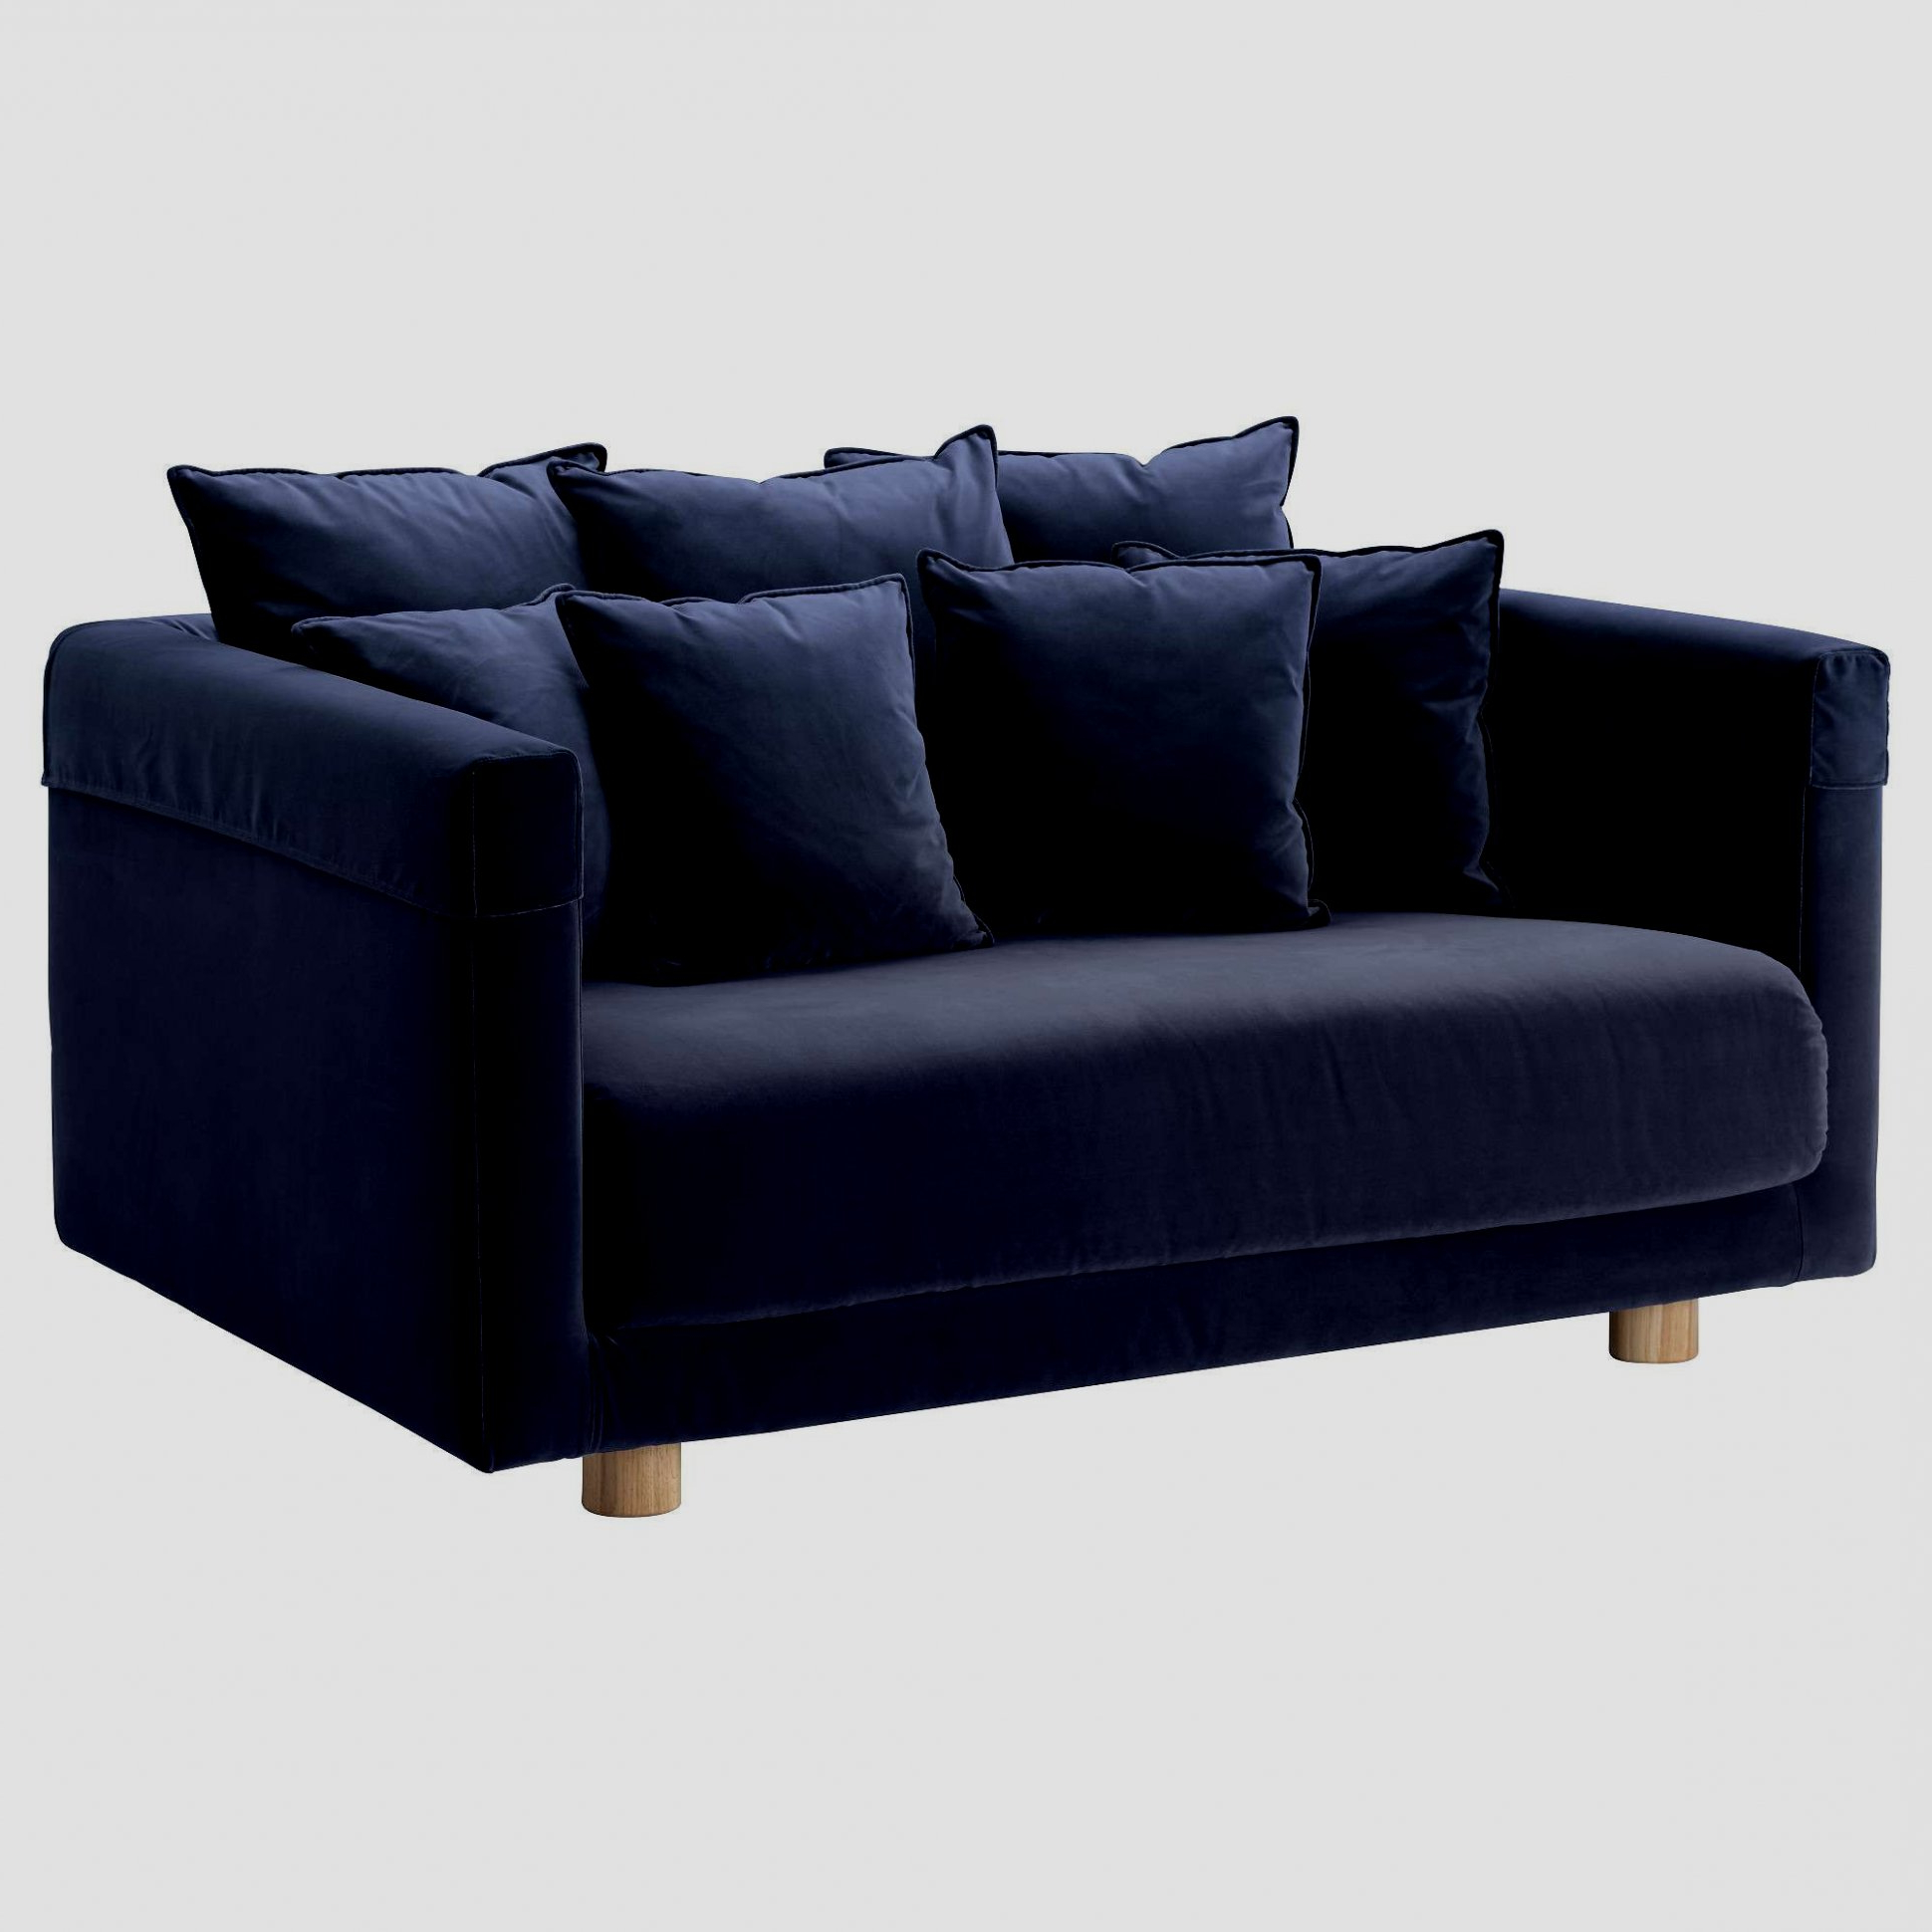 Sofas Reclinables El Corte Ingles Corte Ingles Sillones O2d5 Sillon Relax Electrico Sharemedoc